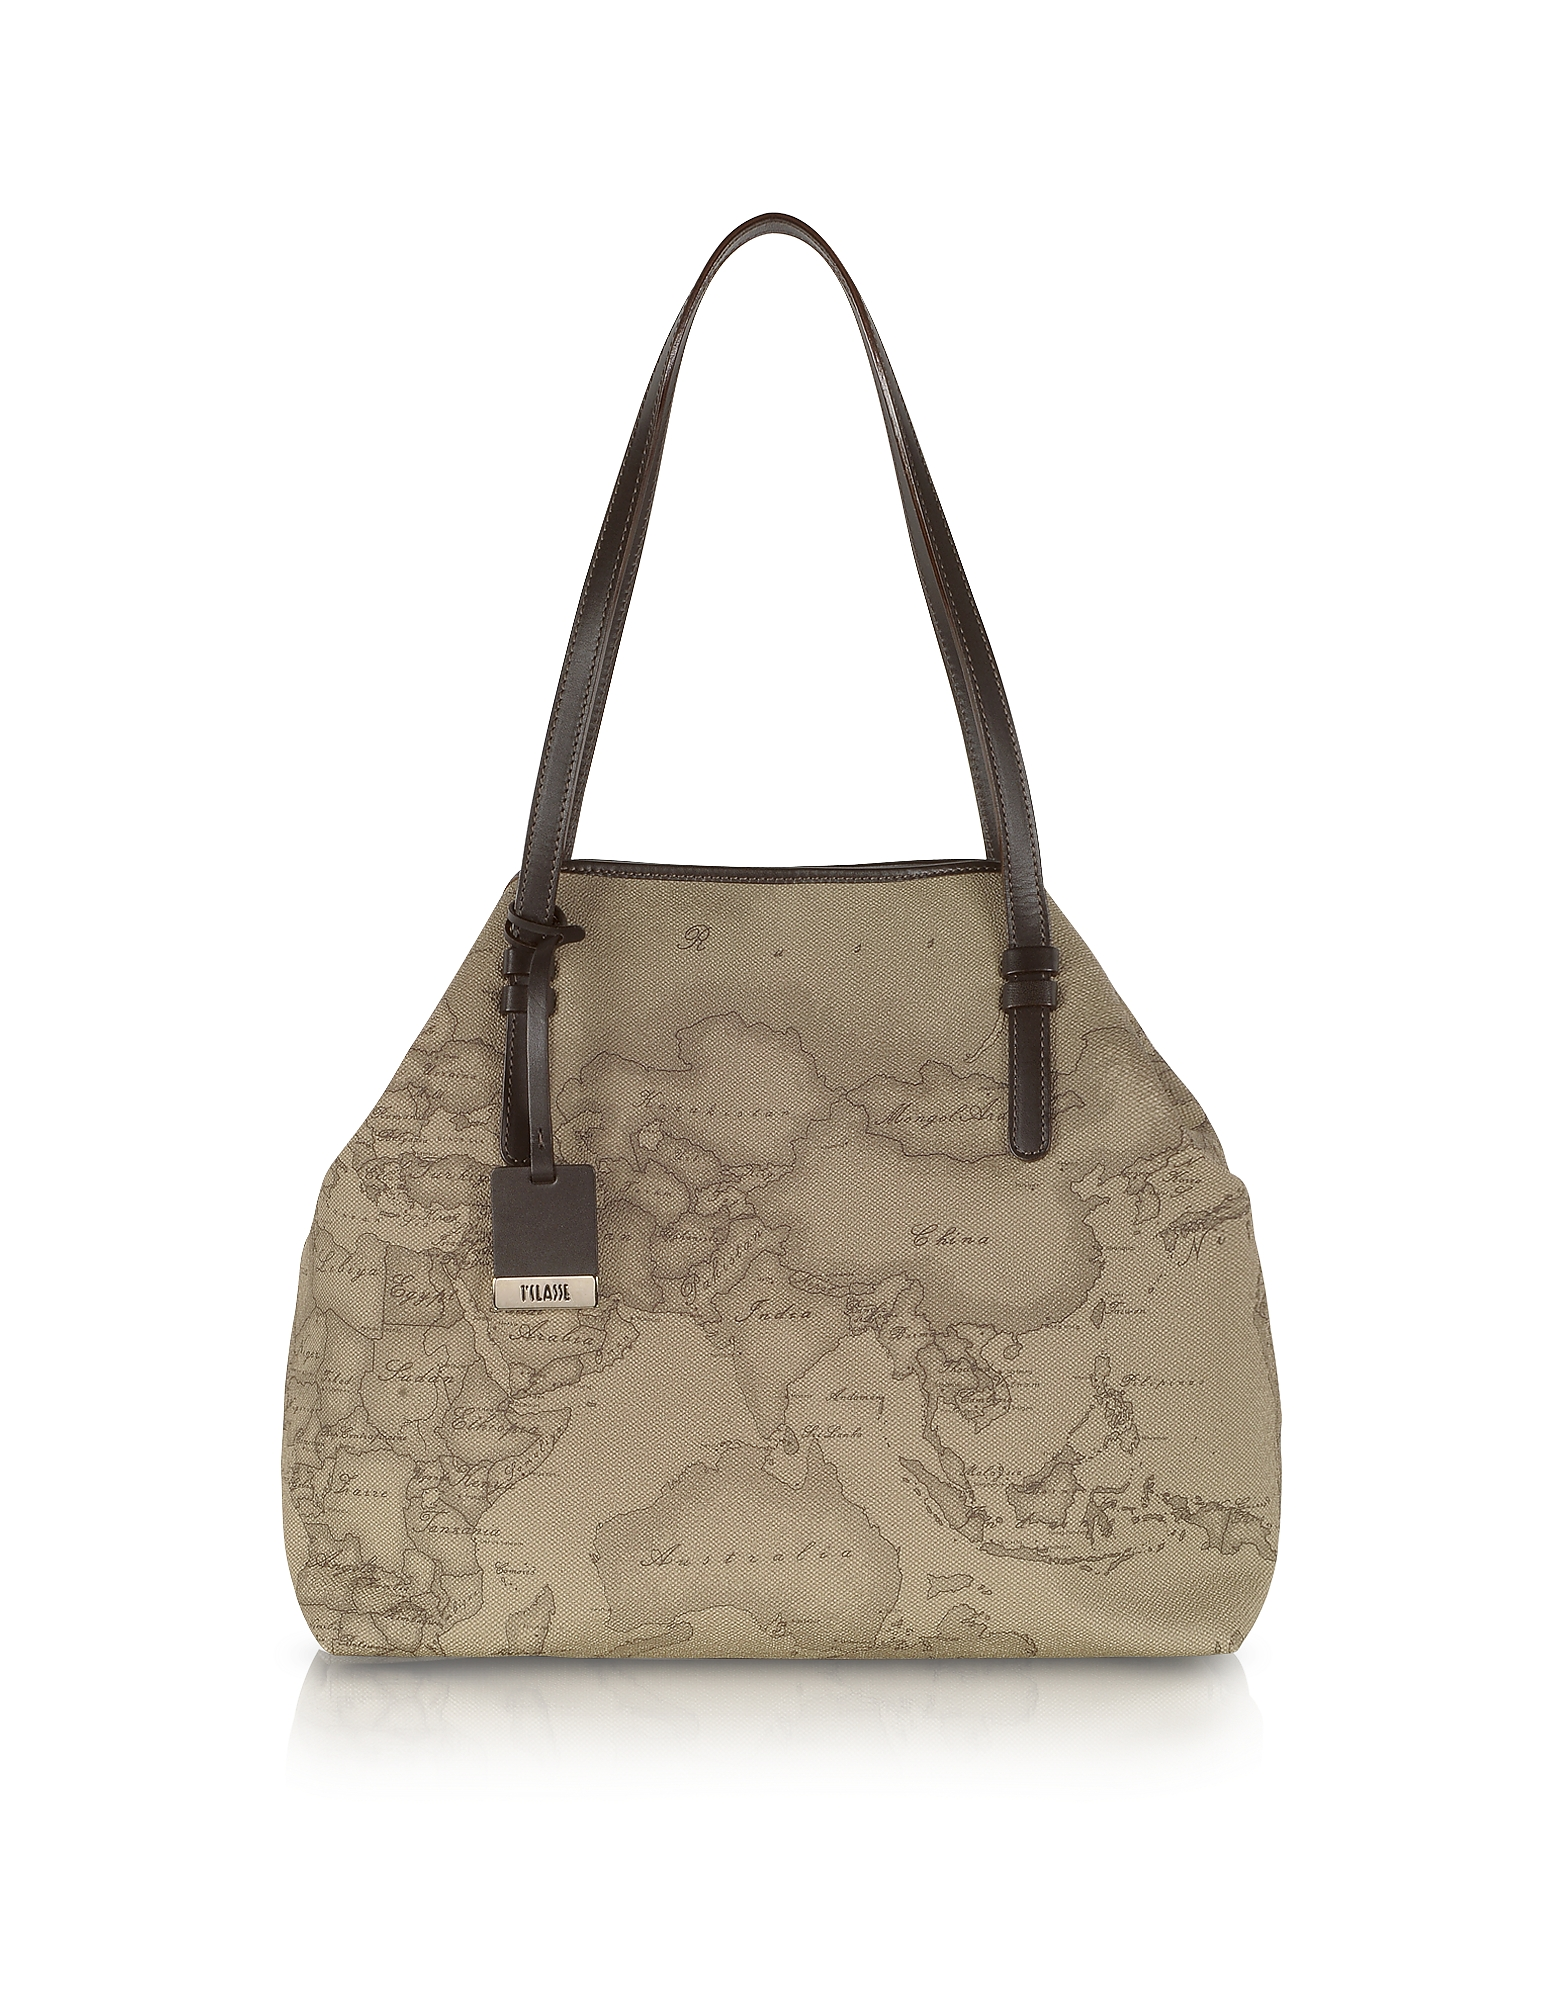 Alviero Martini 1A Classe Designer Handbags, Geo Printed Large 'New Basic' Shoulder Bag (Luggage & Bags) photo